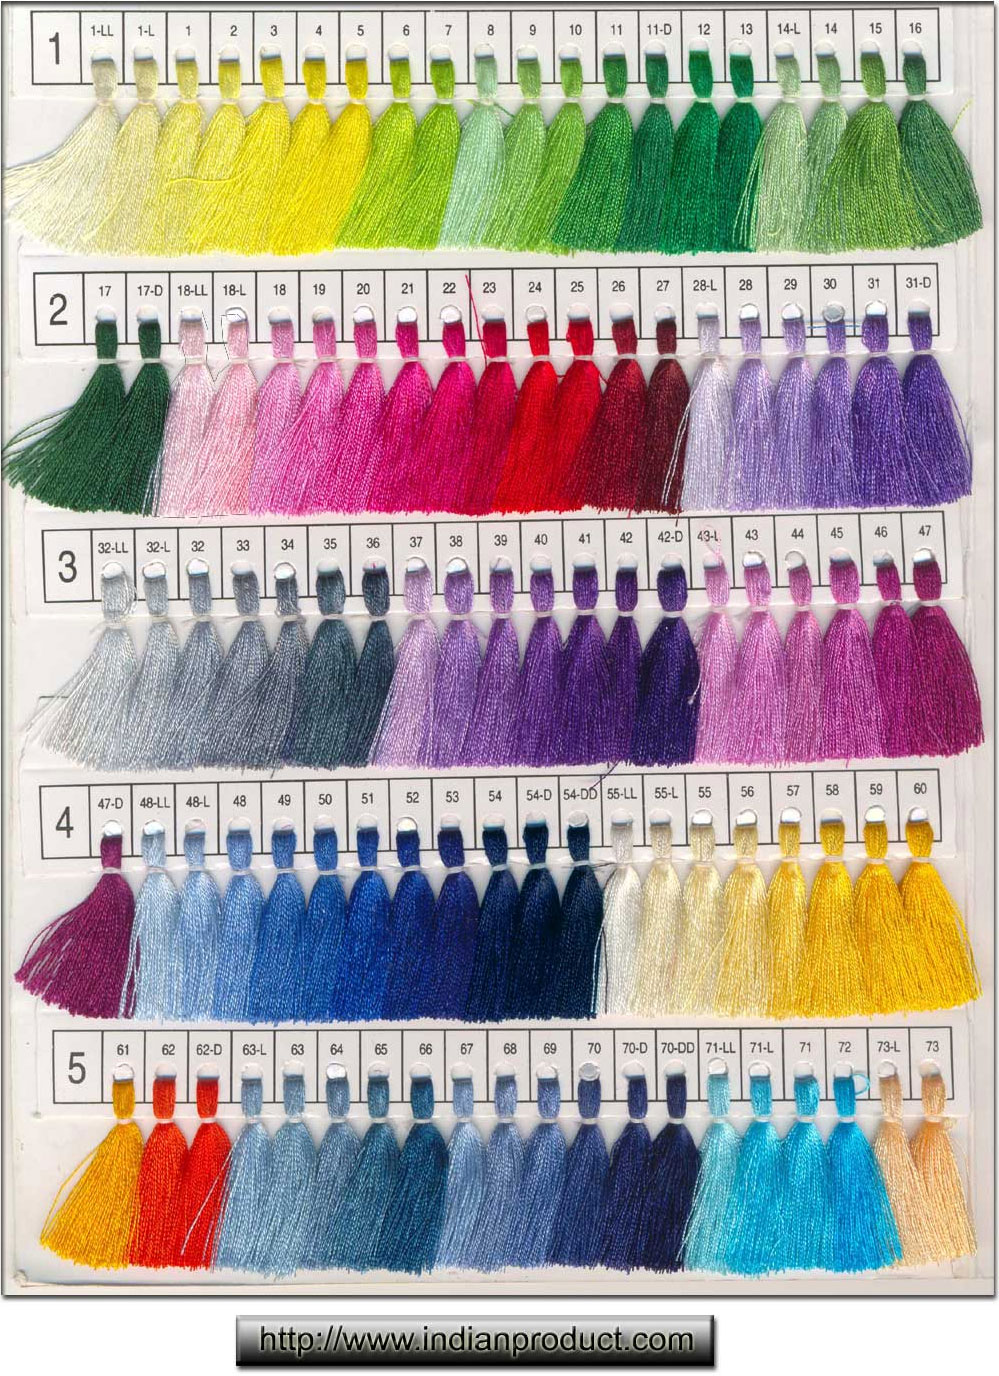 Color chart indianproduct nvjuhfo Images